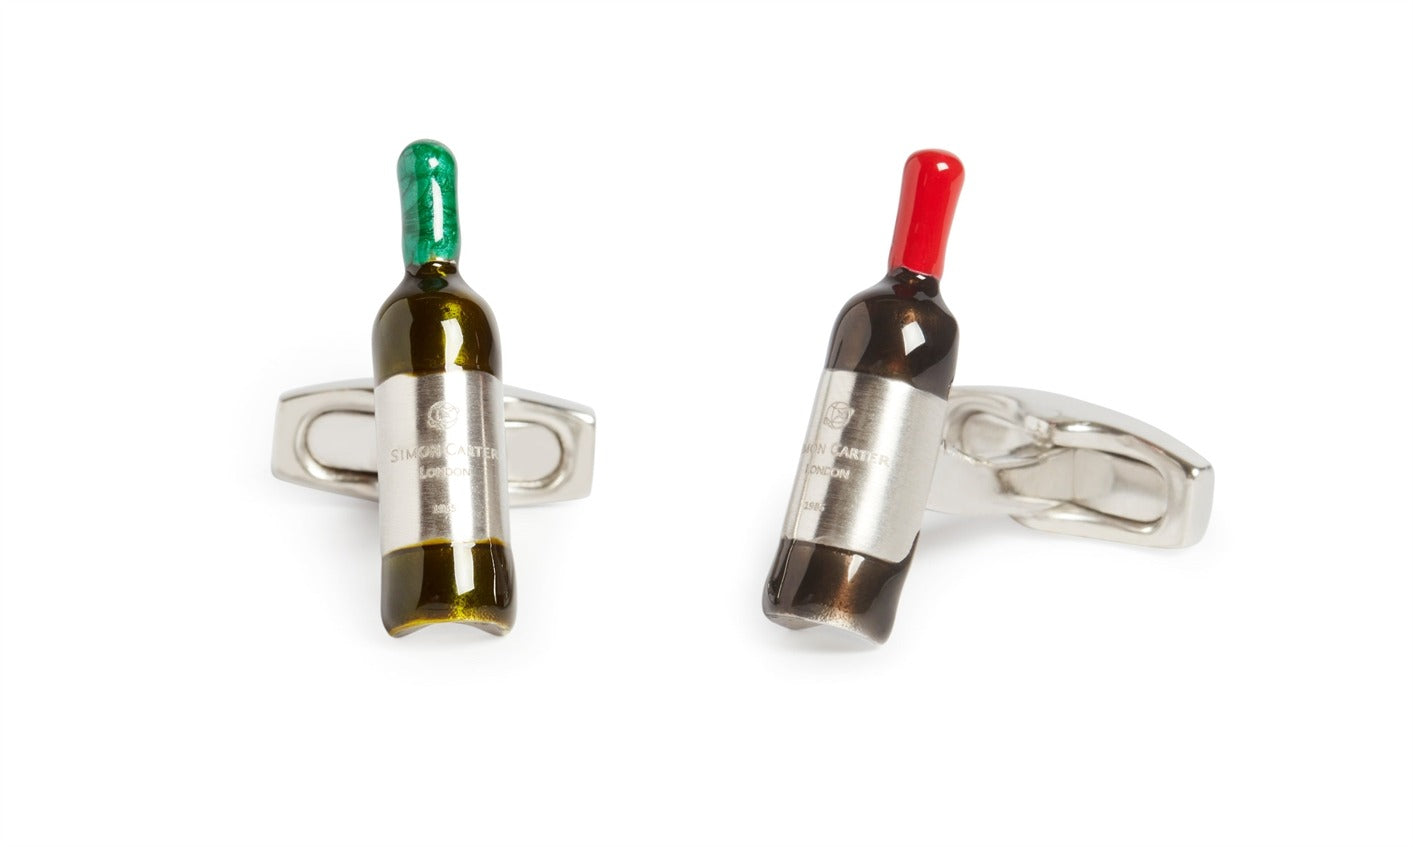 Cuffs Simon Carter Red And White Wine Bottle サイモンカーター カフス ヴィンテージワイン